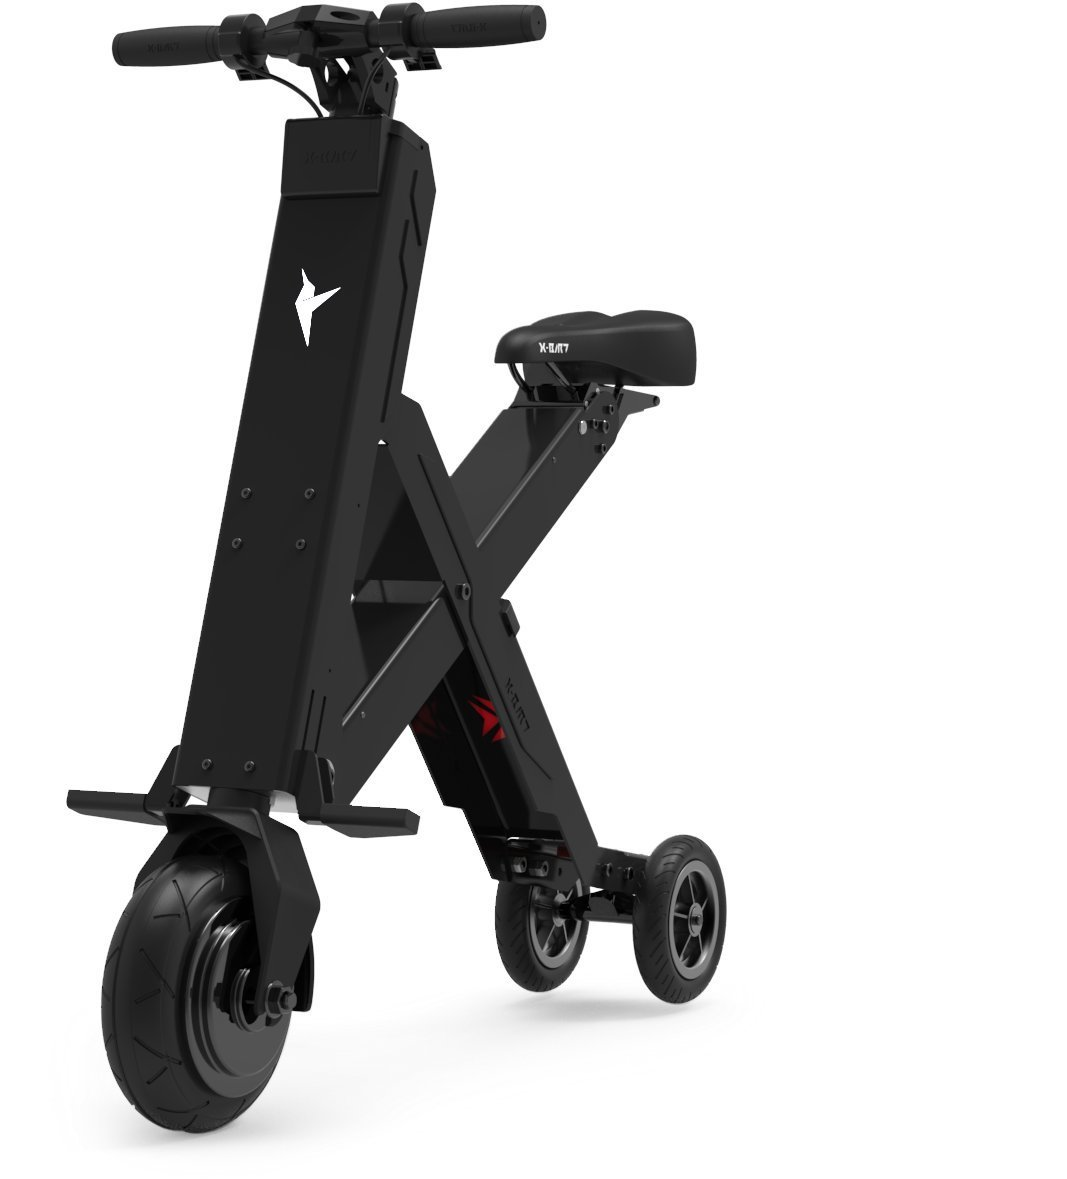 x-bird-foldable-electric-scooter